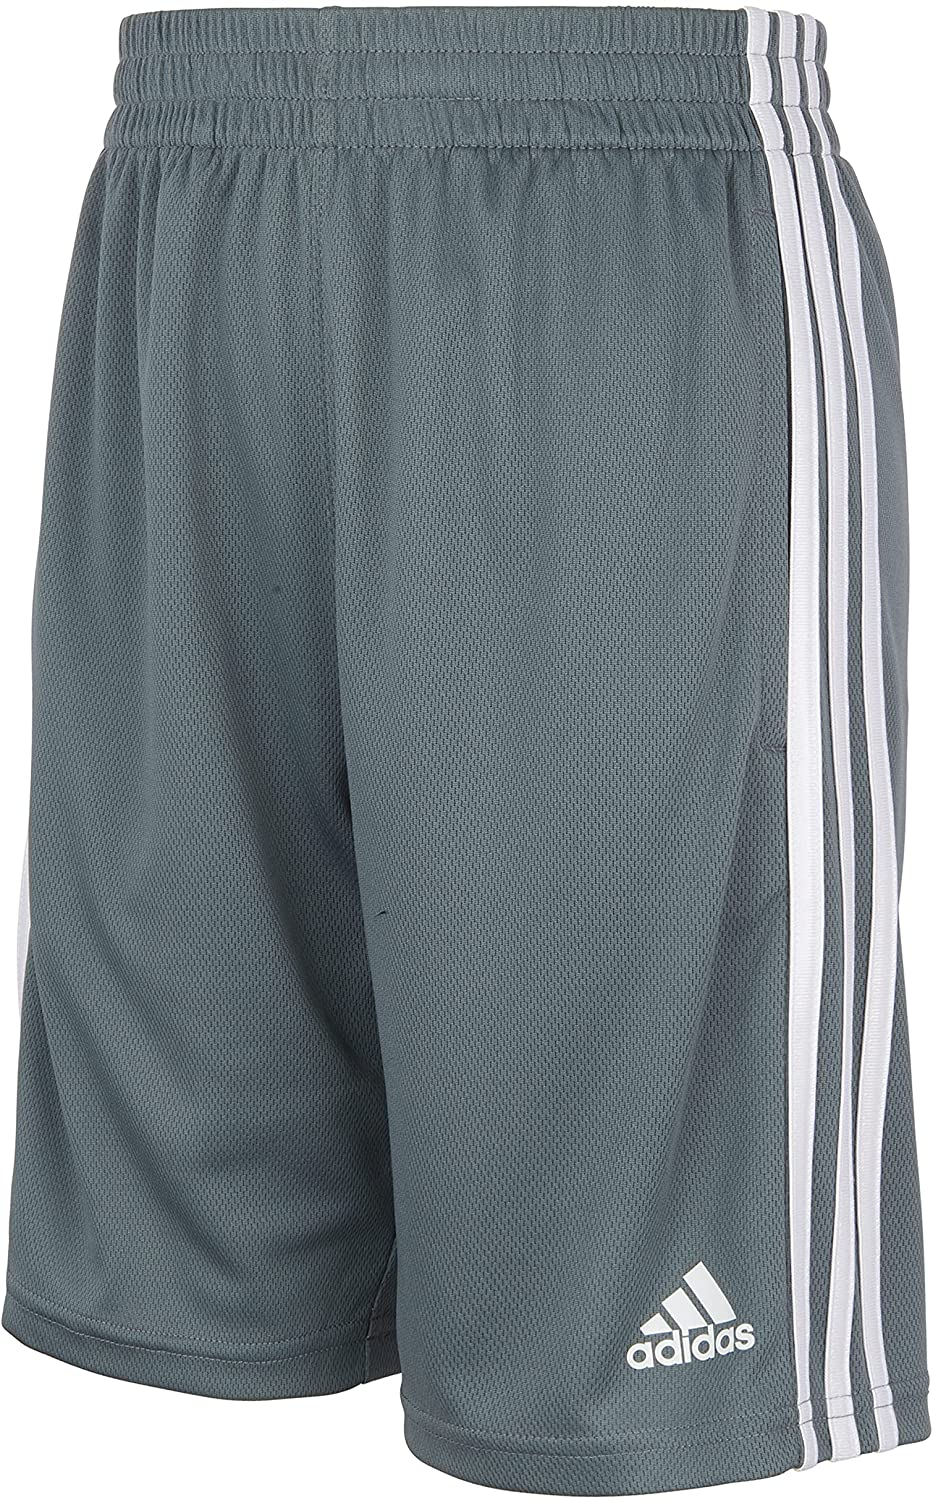 adidas boys Adi Clsic High Ranking integrated 1st place order 3s Shorts Dark Years 8-15 US Gray